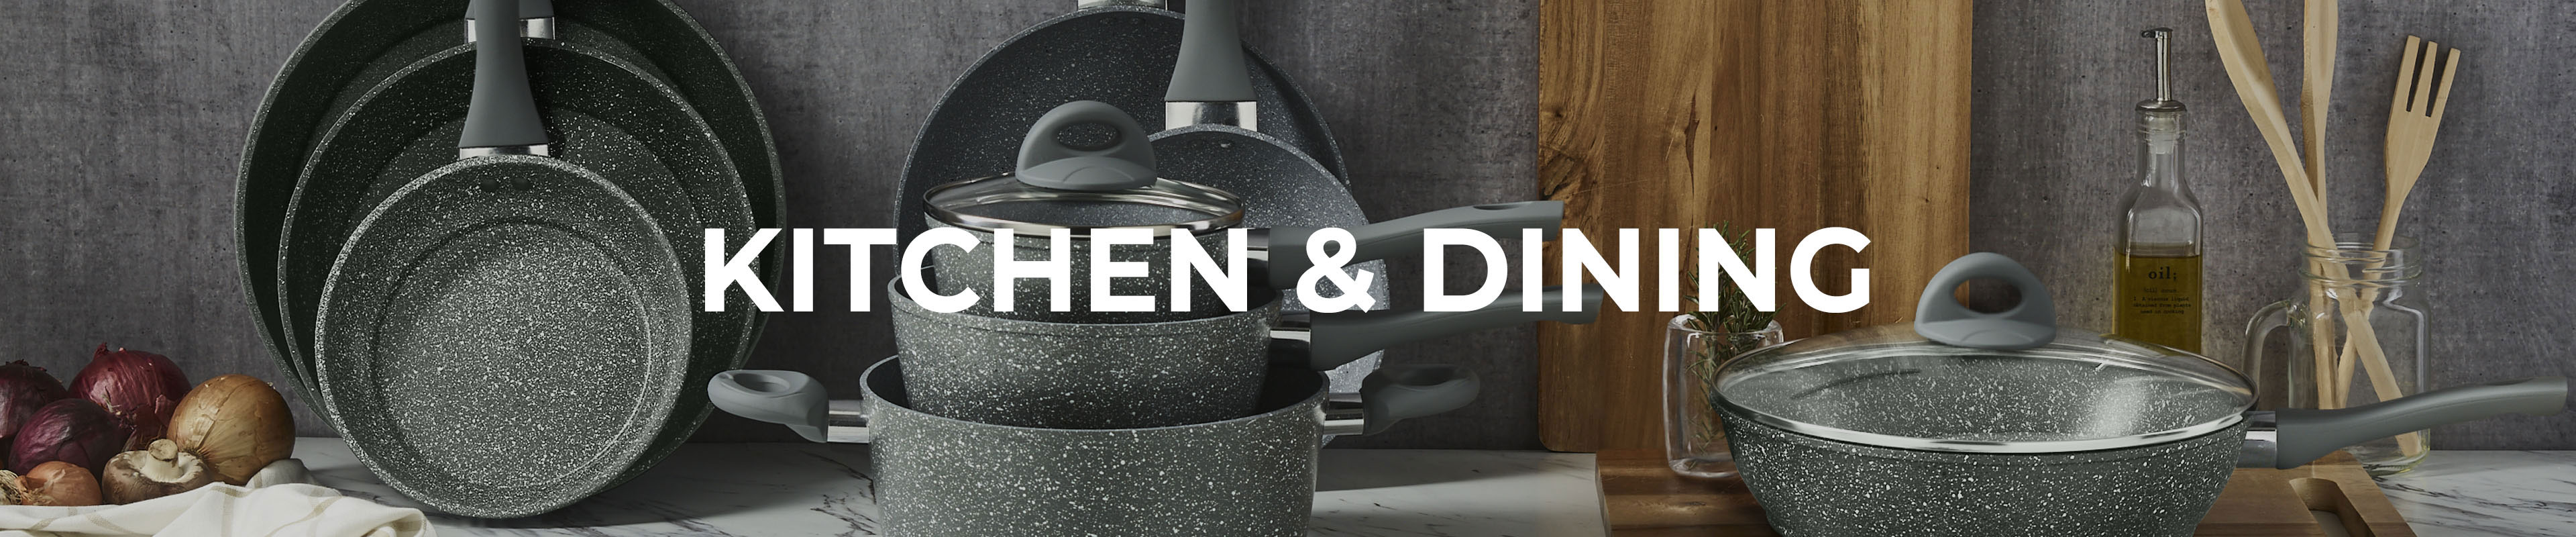 Shop Our Kitchen & Dining Range